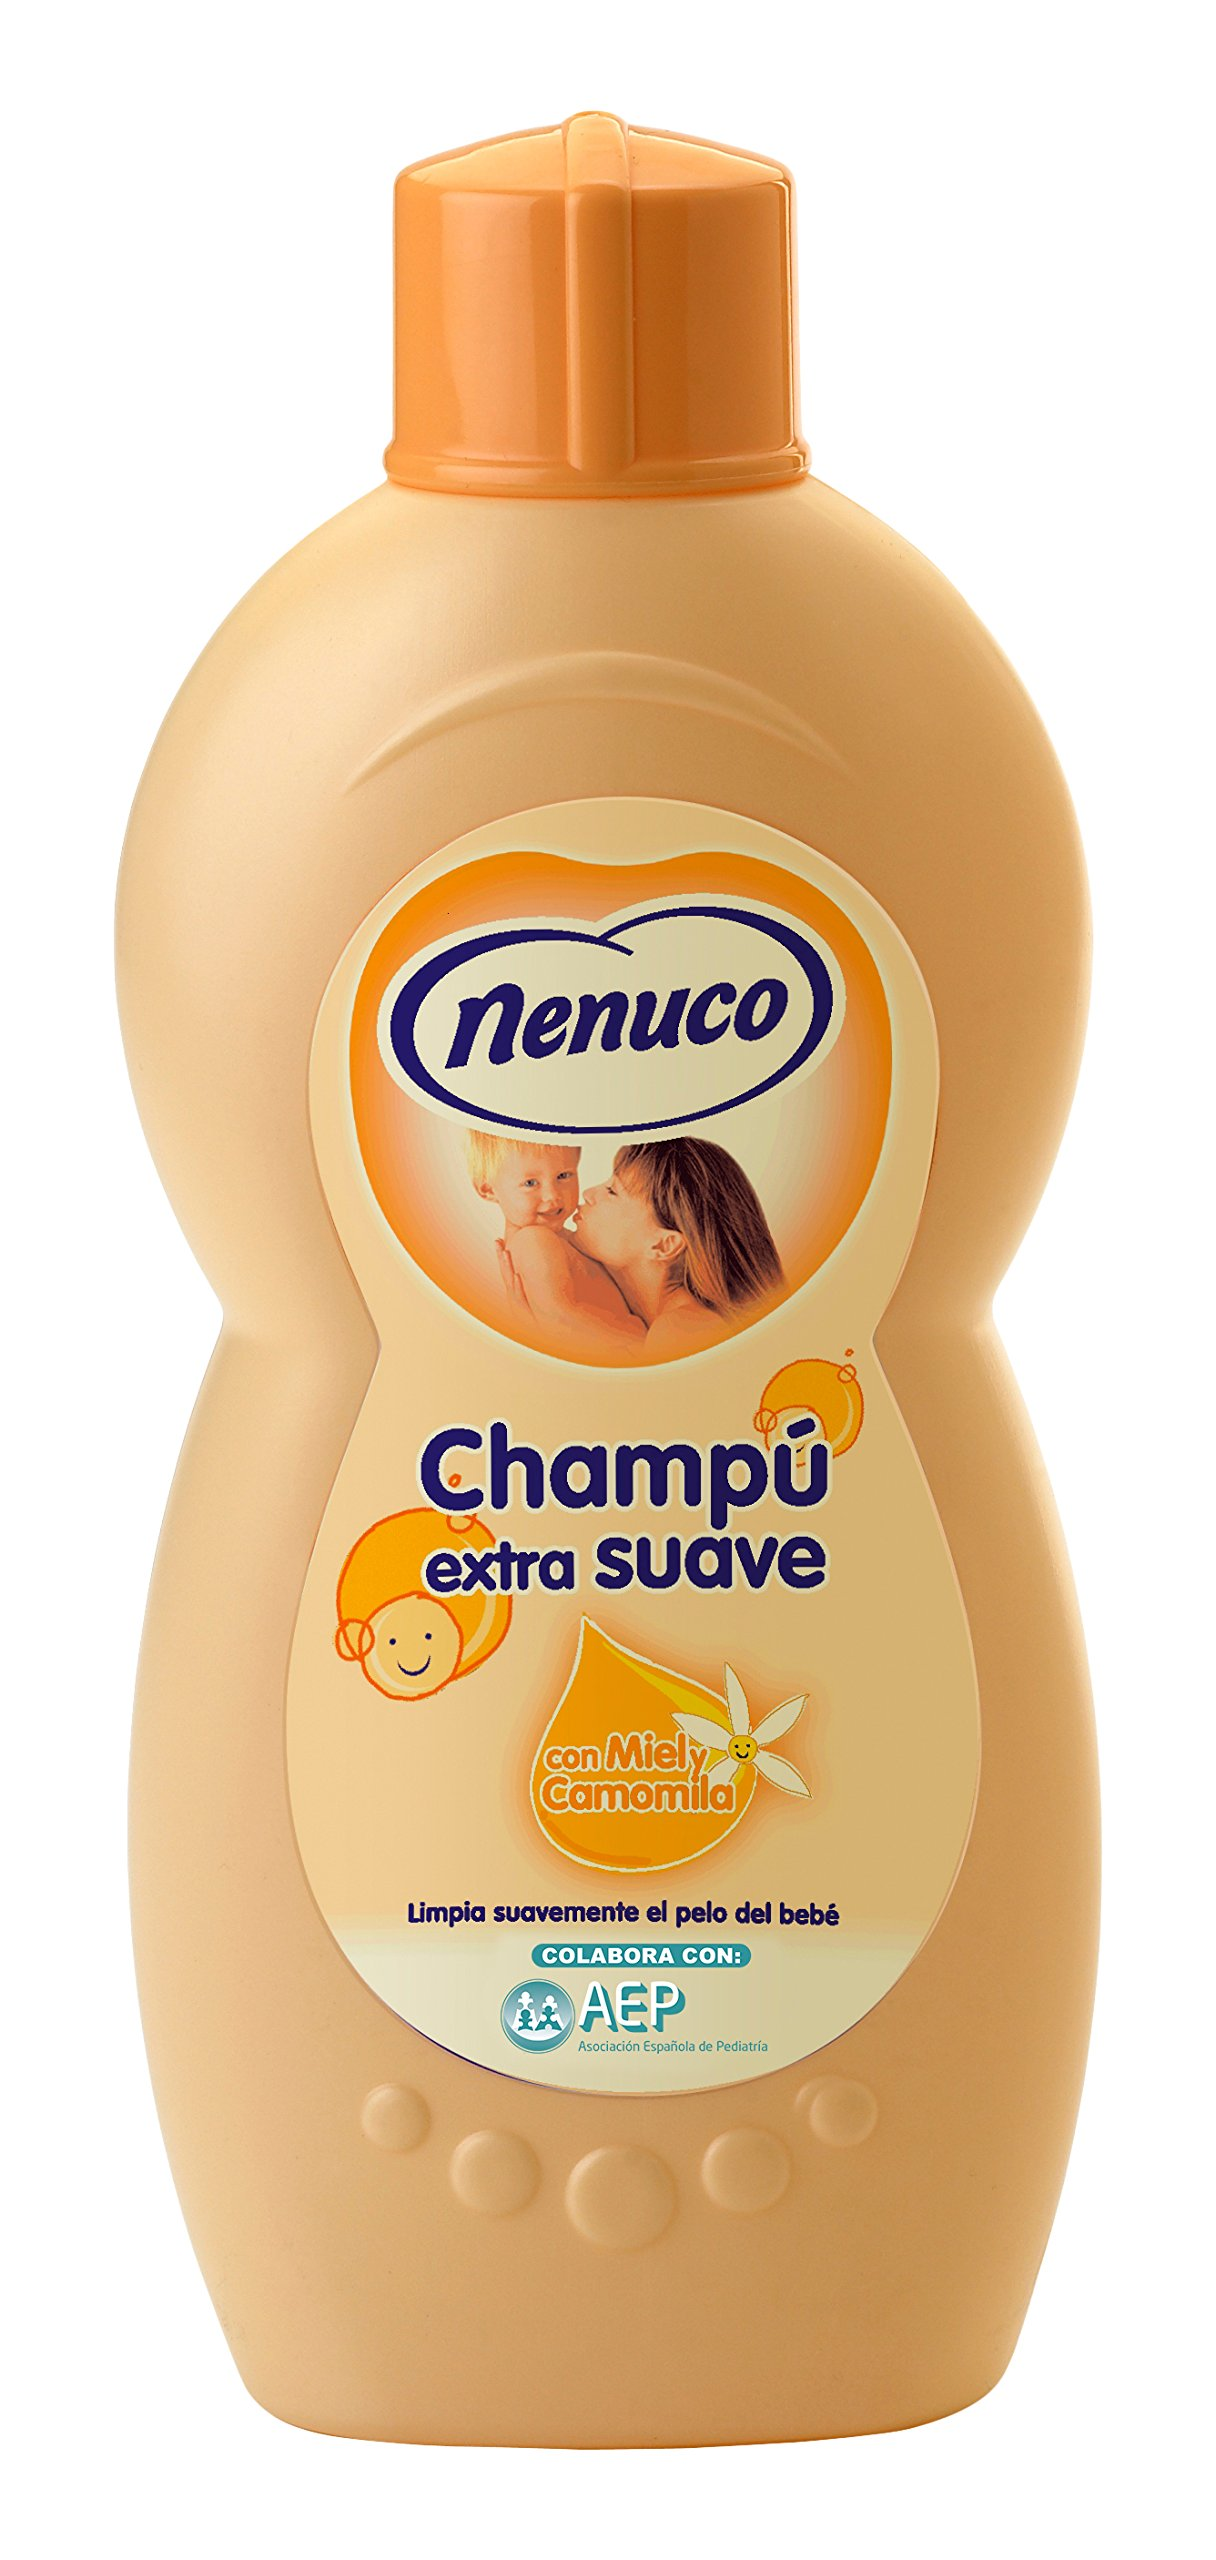 Nenuco Shampoo (17 fl oz/500 ml)